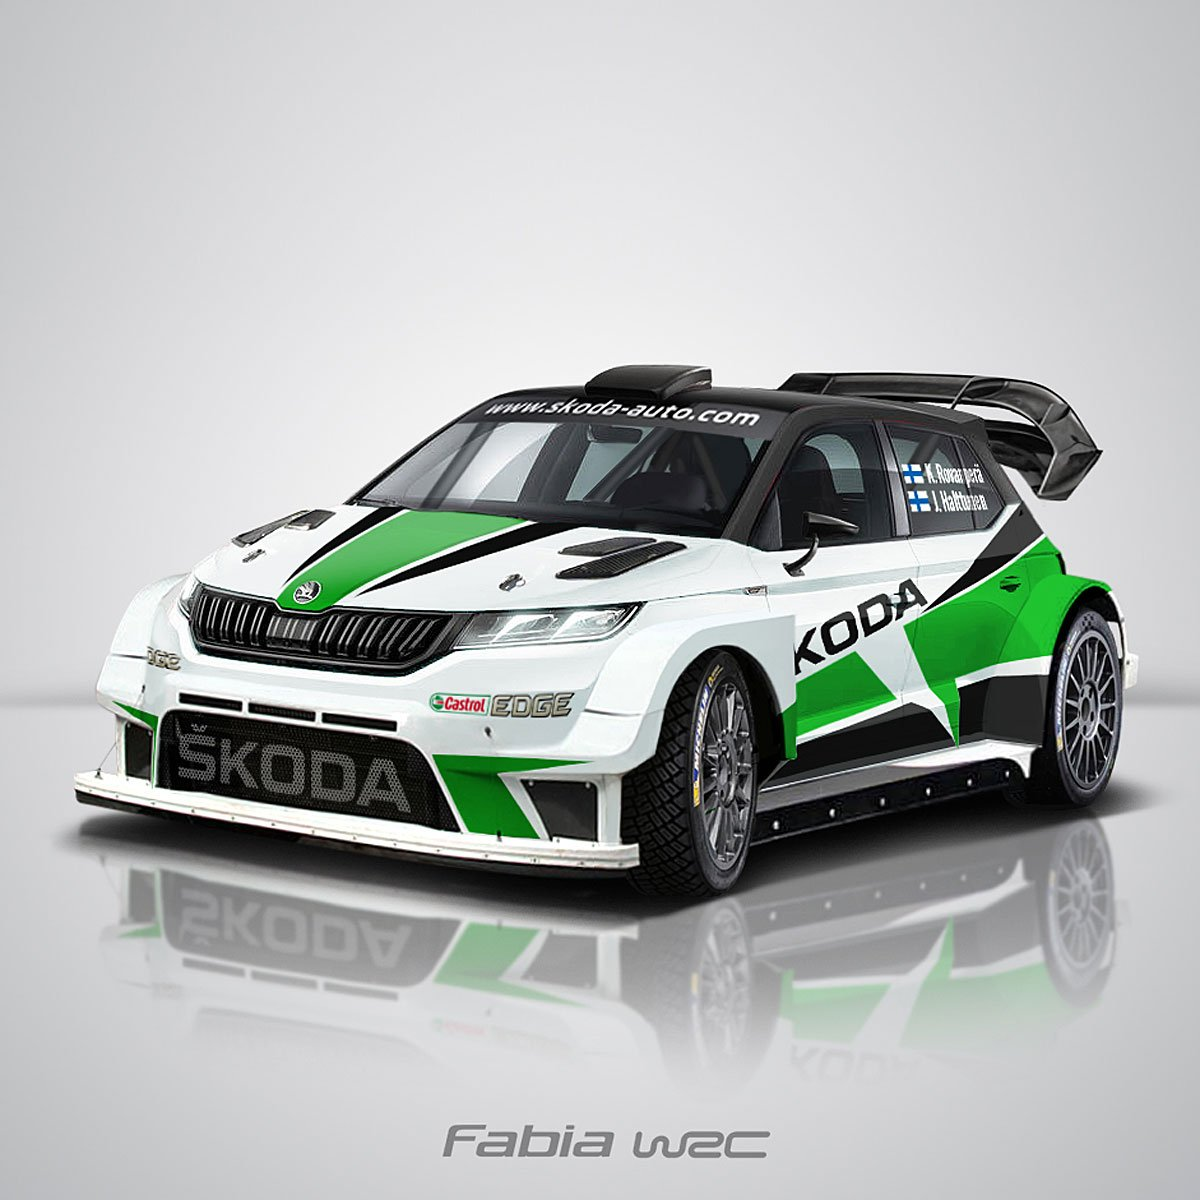 tom nn on twitter fabia wrc 2019 o wrc. Black Bedroom Furniture Sets. Home Design Ideas